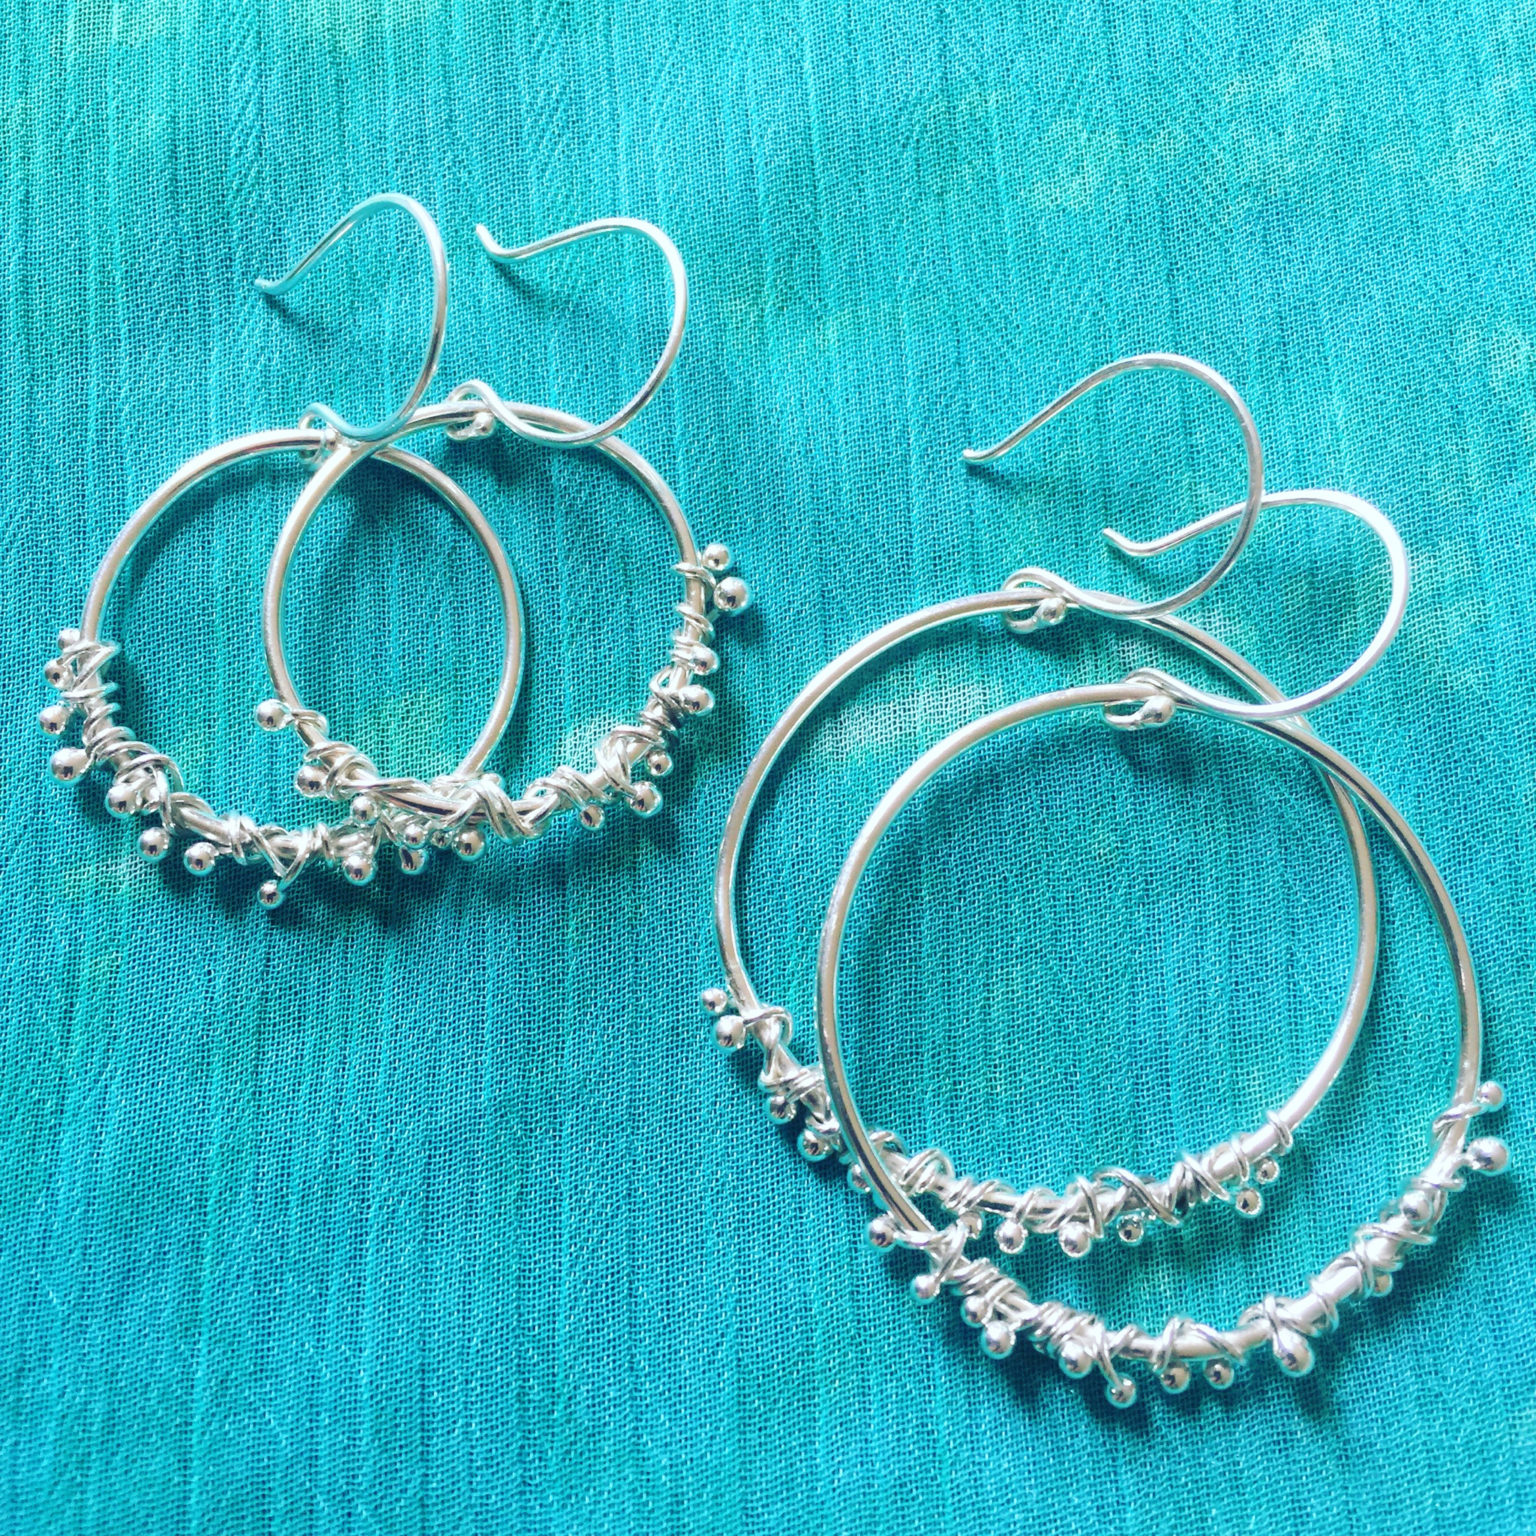 Jewelry by Tracey Tissler